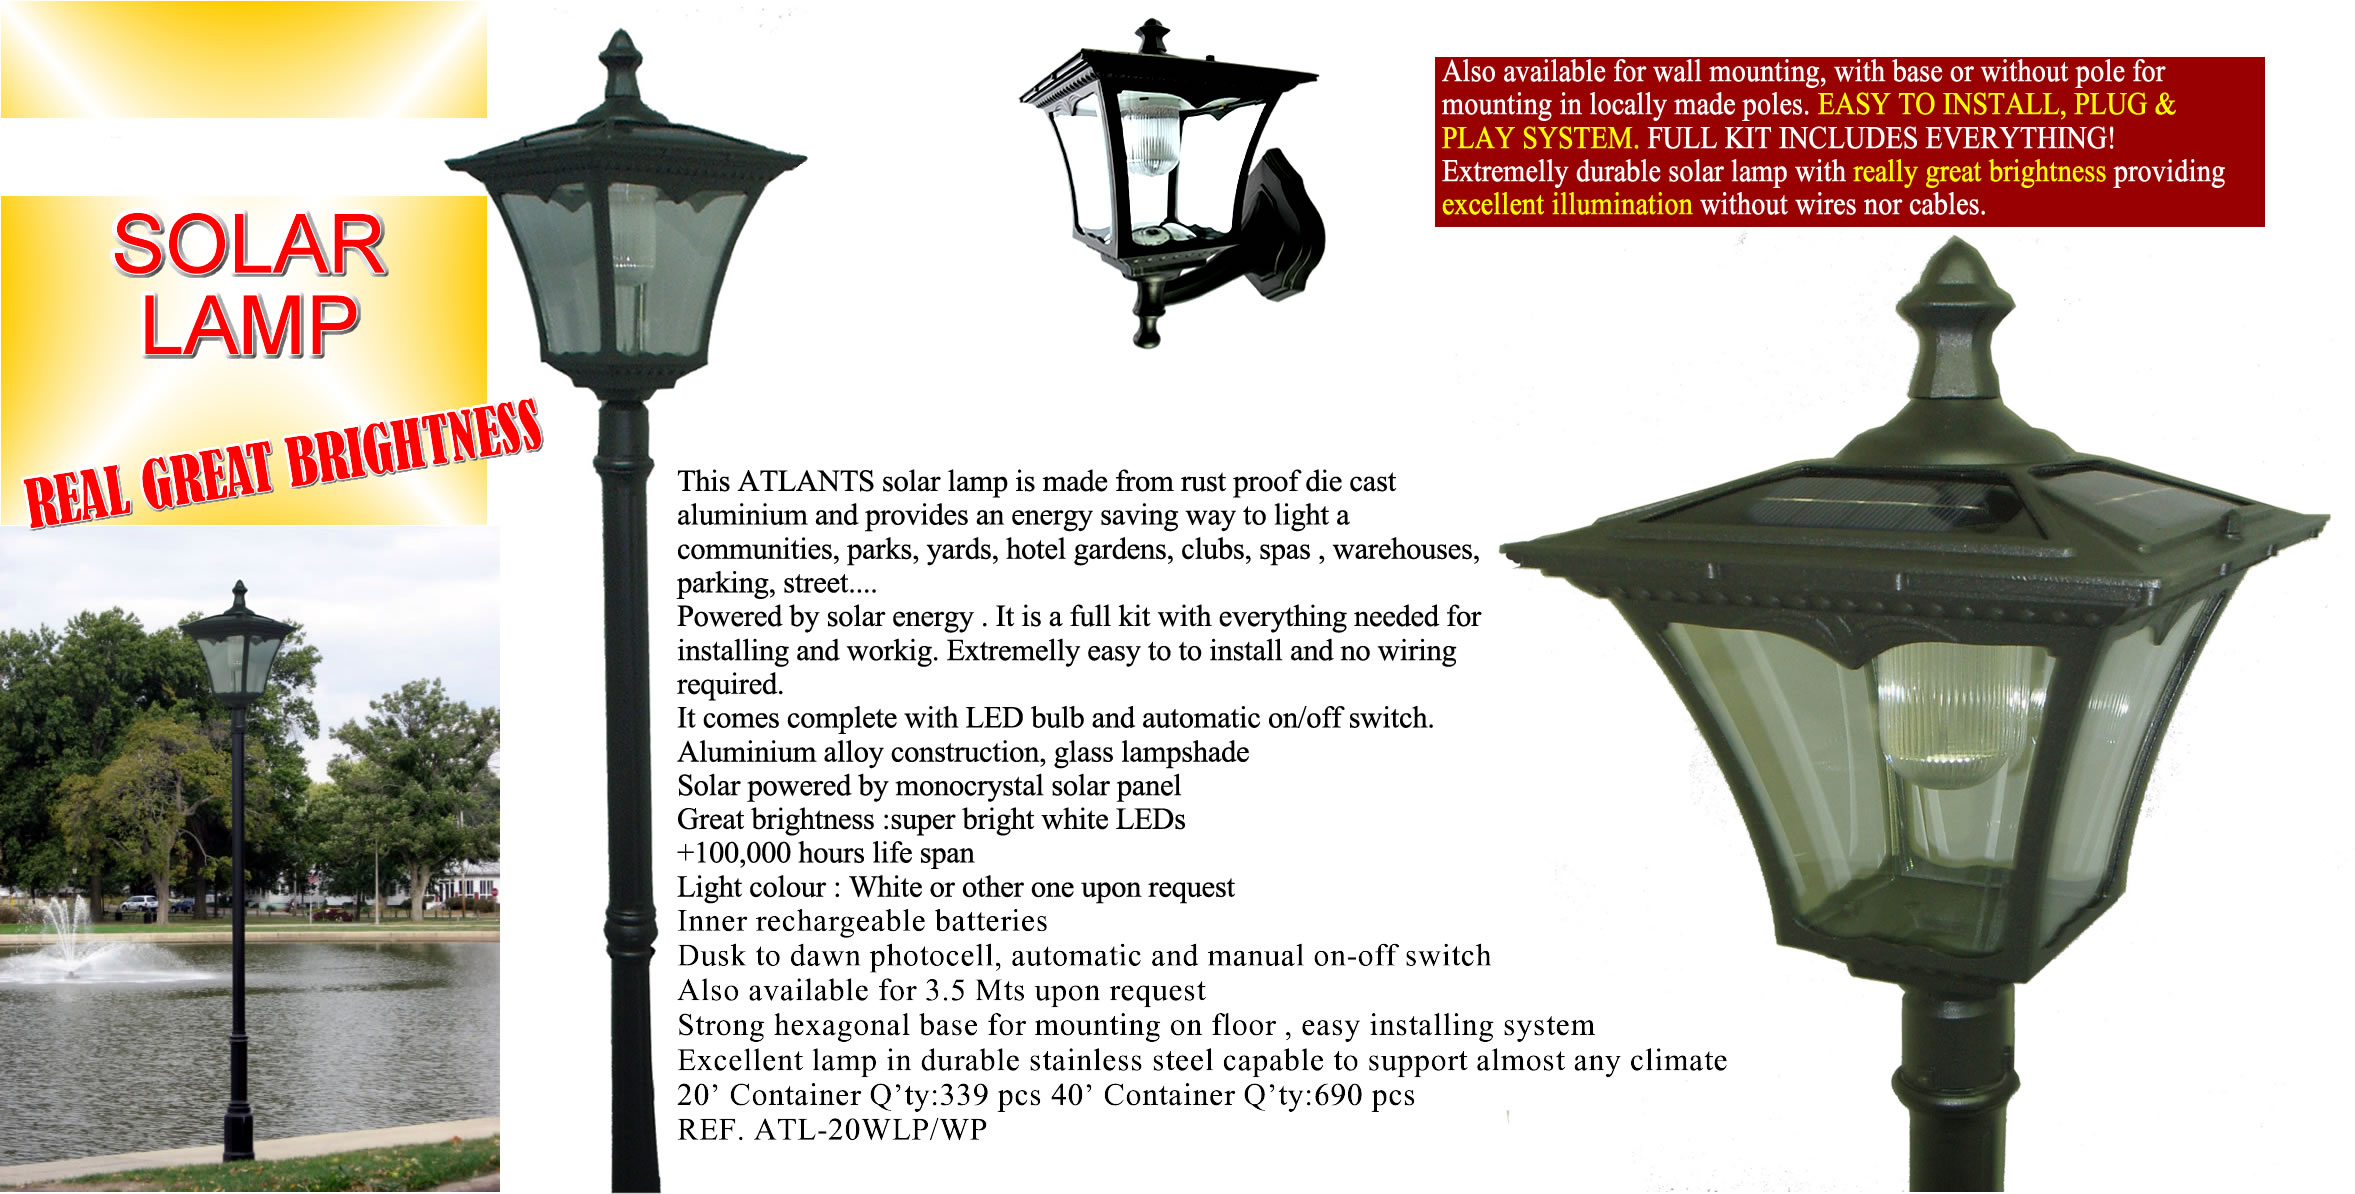 STREET LEDS + POLE-Solar powered SUPER BRIGHT LED lamp-plug-play 1